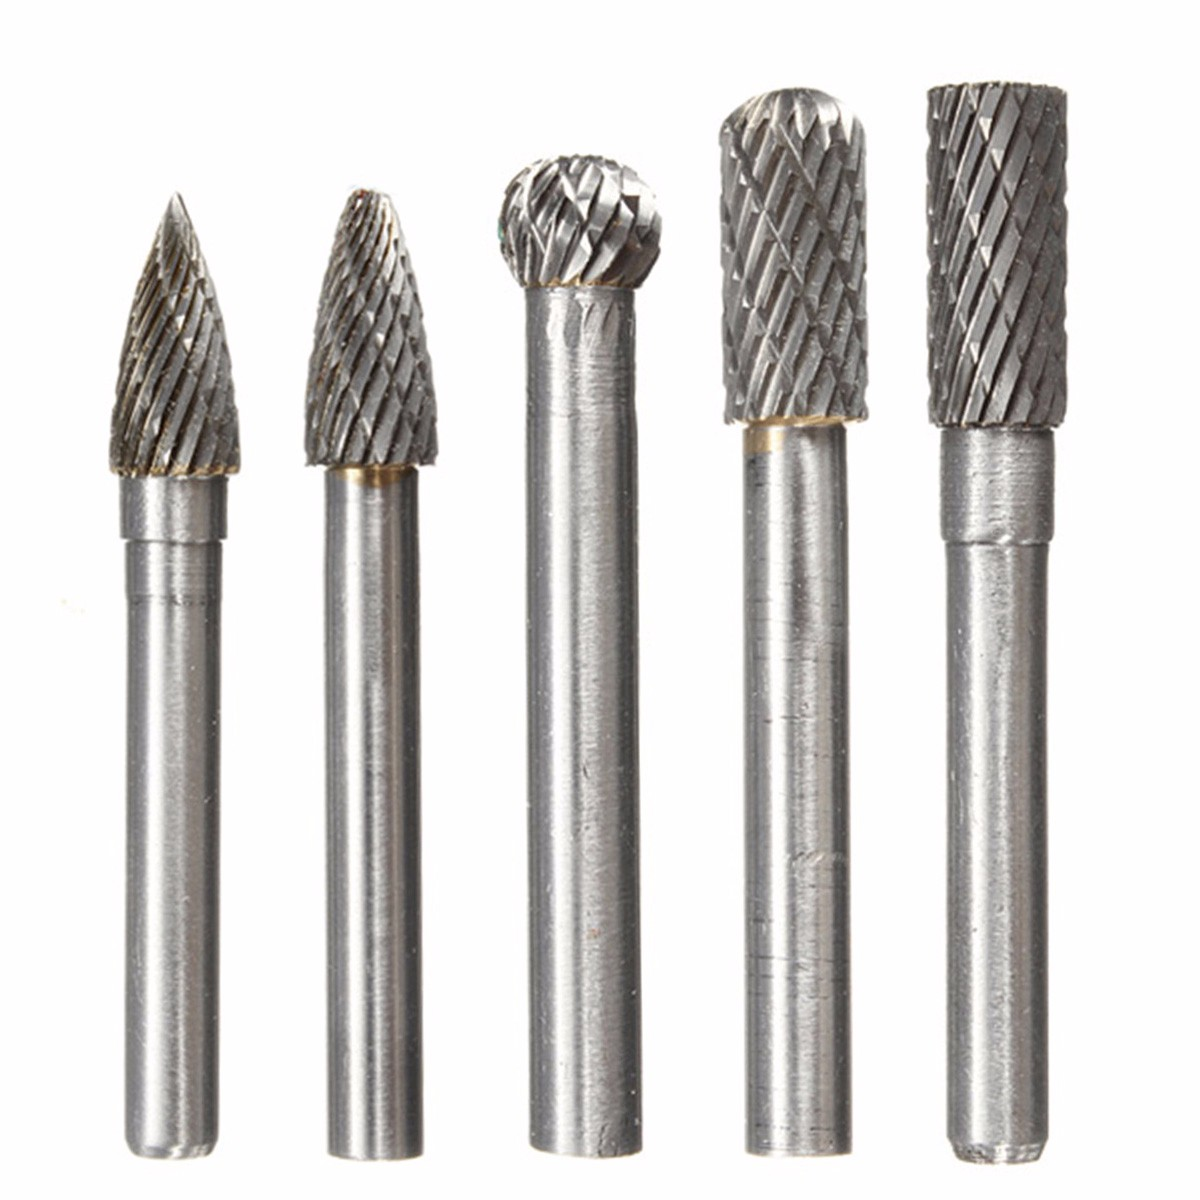 Grinder Tools Carving-Bit Drill Milling Type Tungsten-Carbide Die Point-Burr A-C-D-F-G